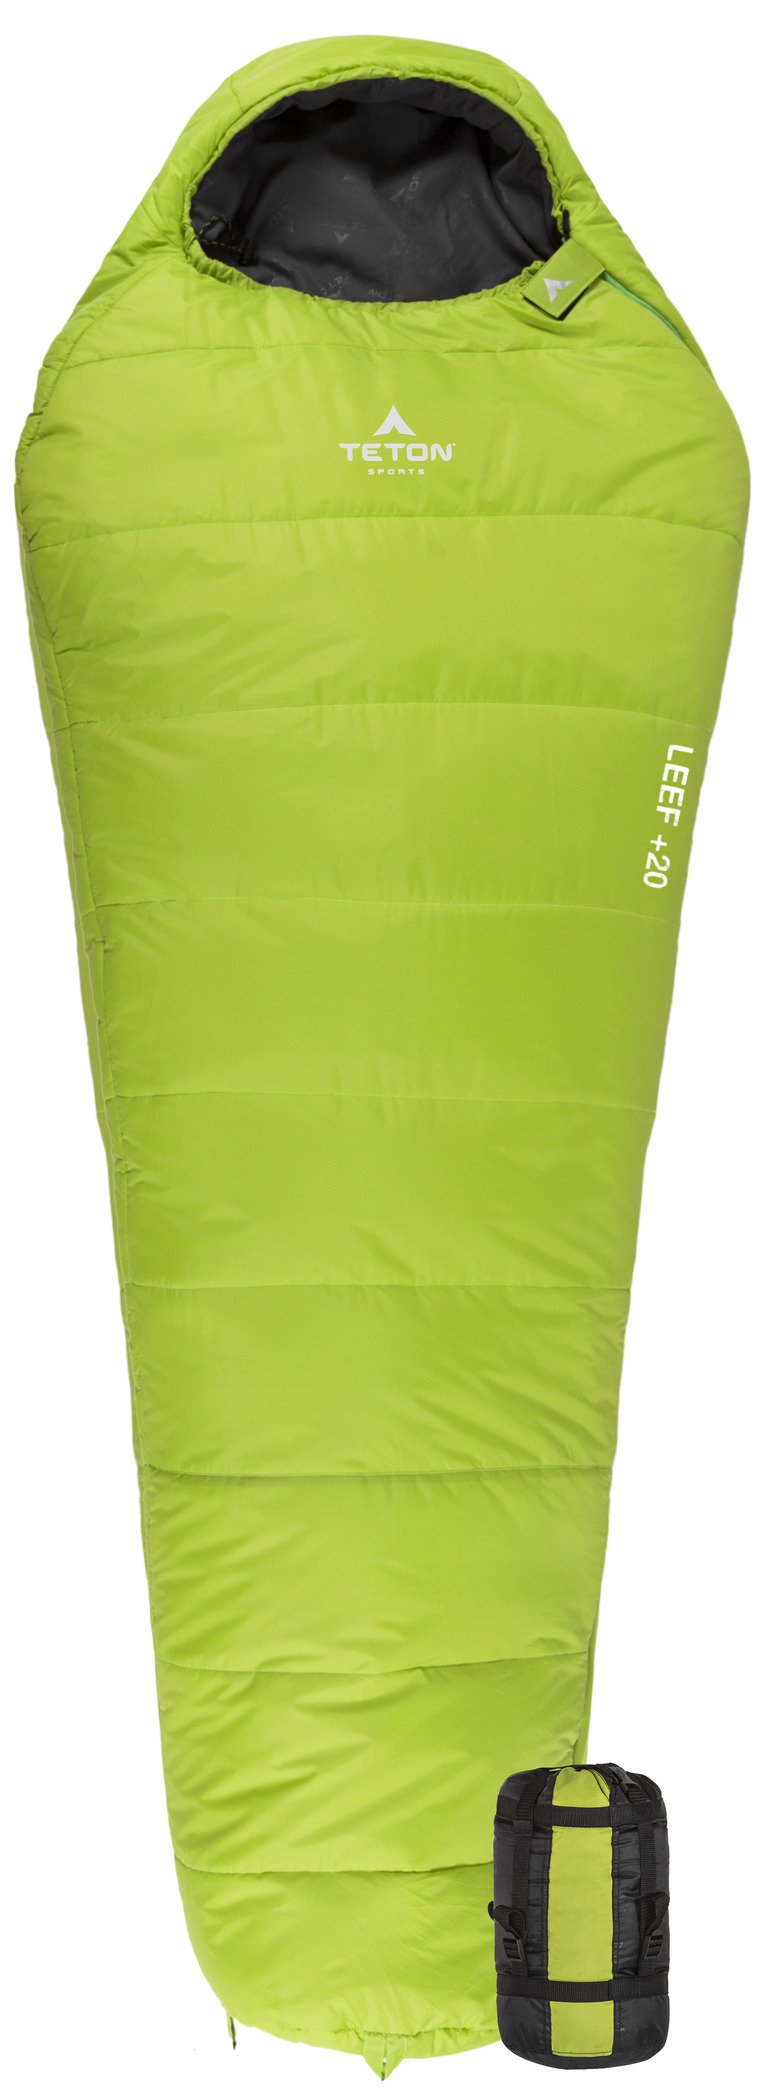 TETON Sports LEEF Lightweight Scout Mummy Sleeping Bag; Great for Hiking, Backpacking and Camping; Free Compression Sack: Green by TETON Sports